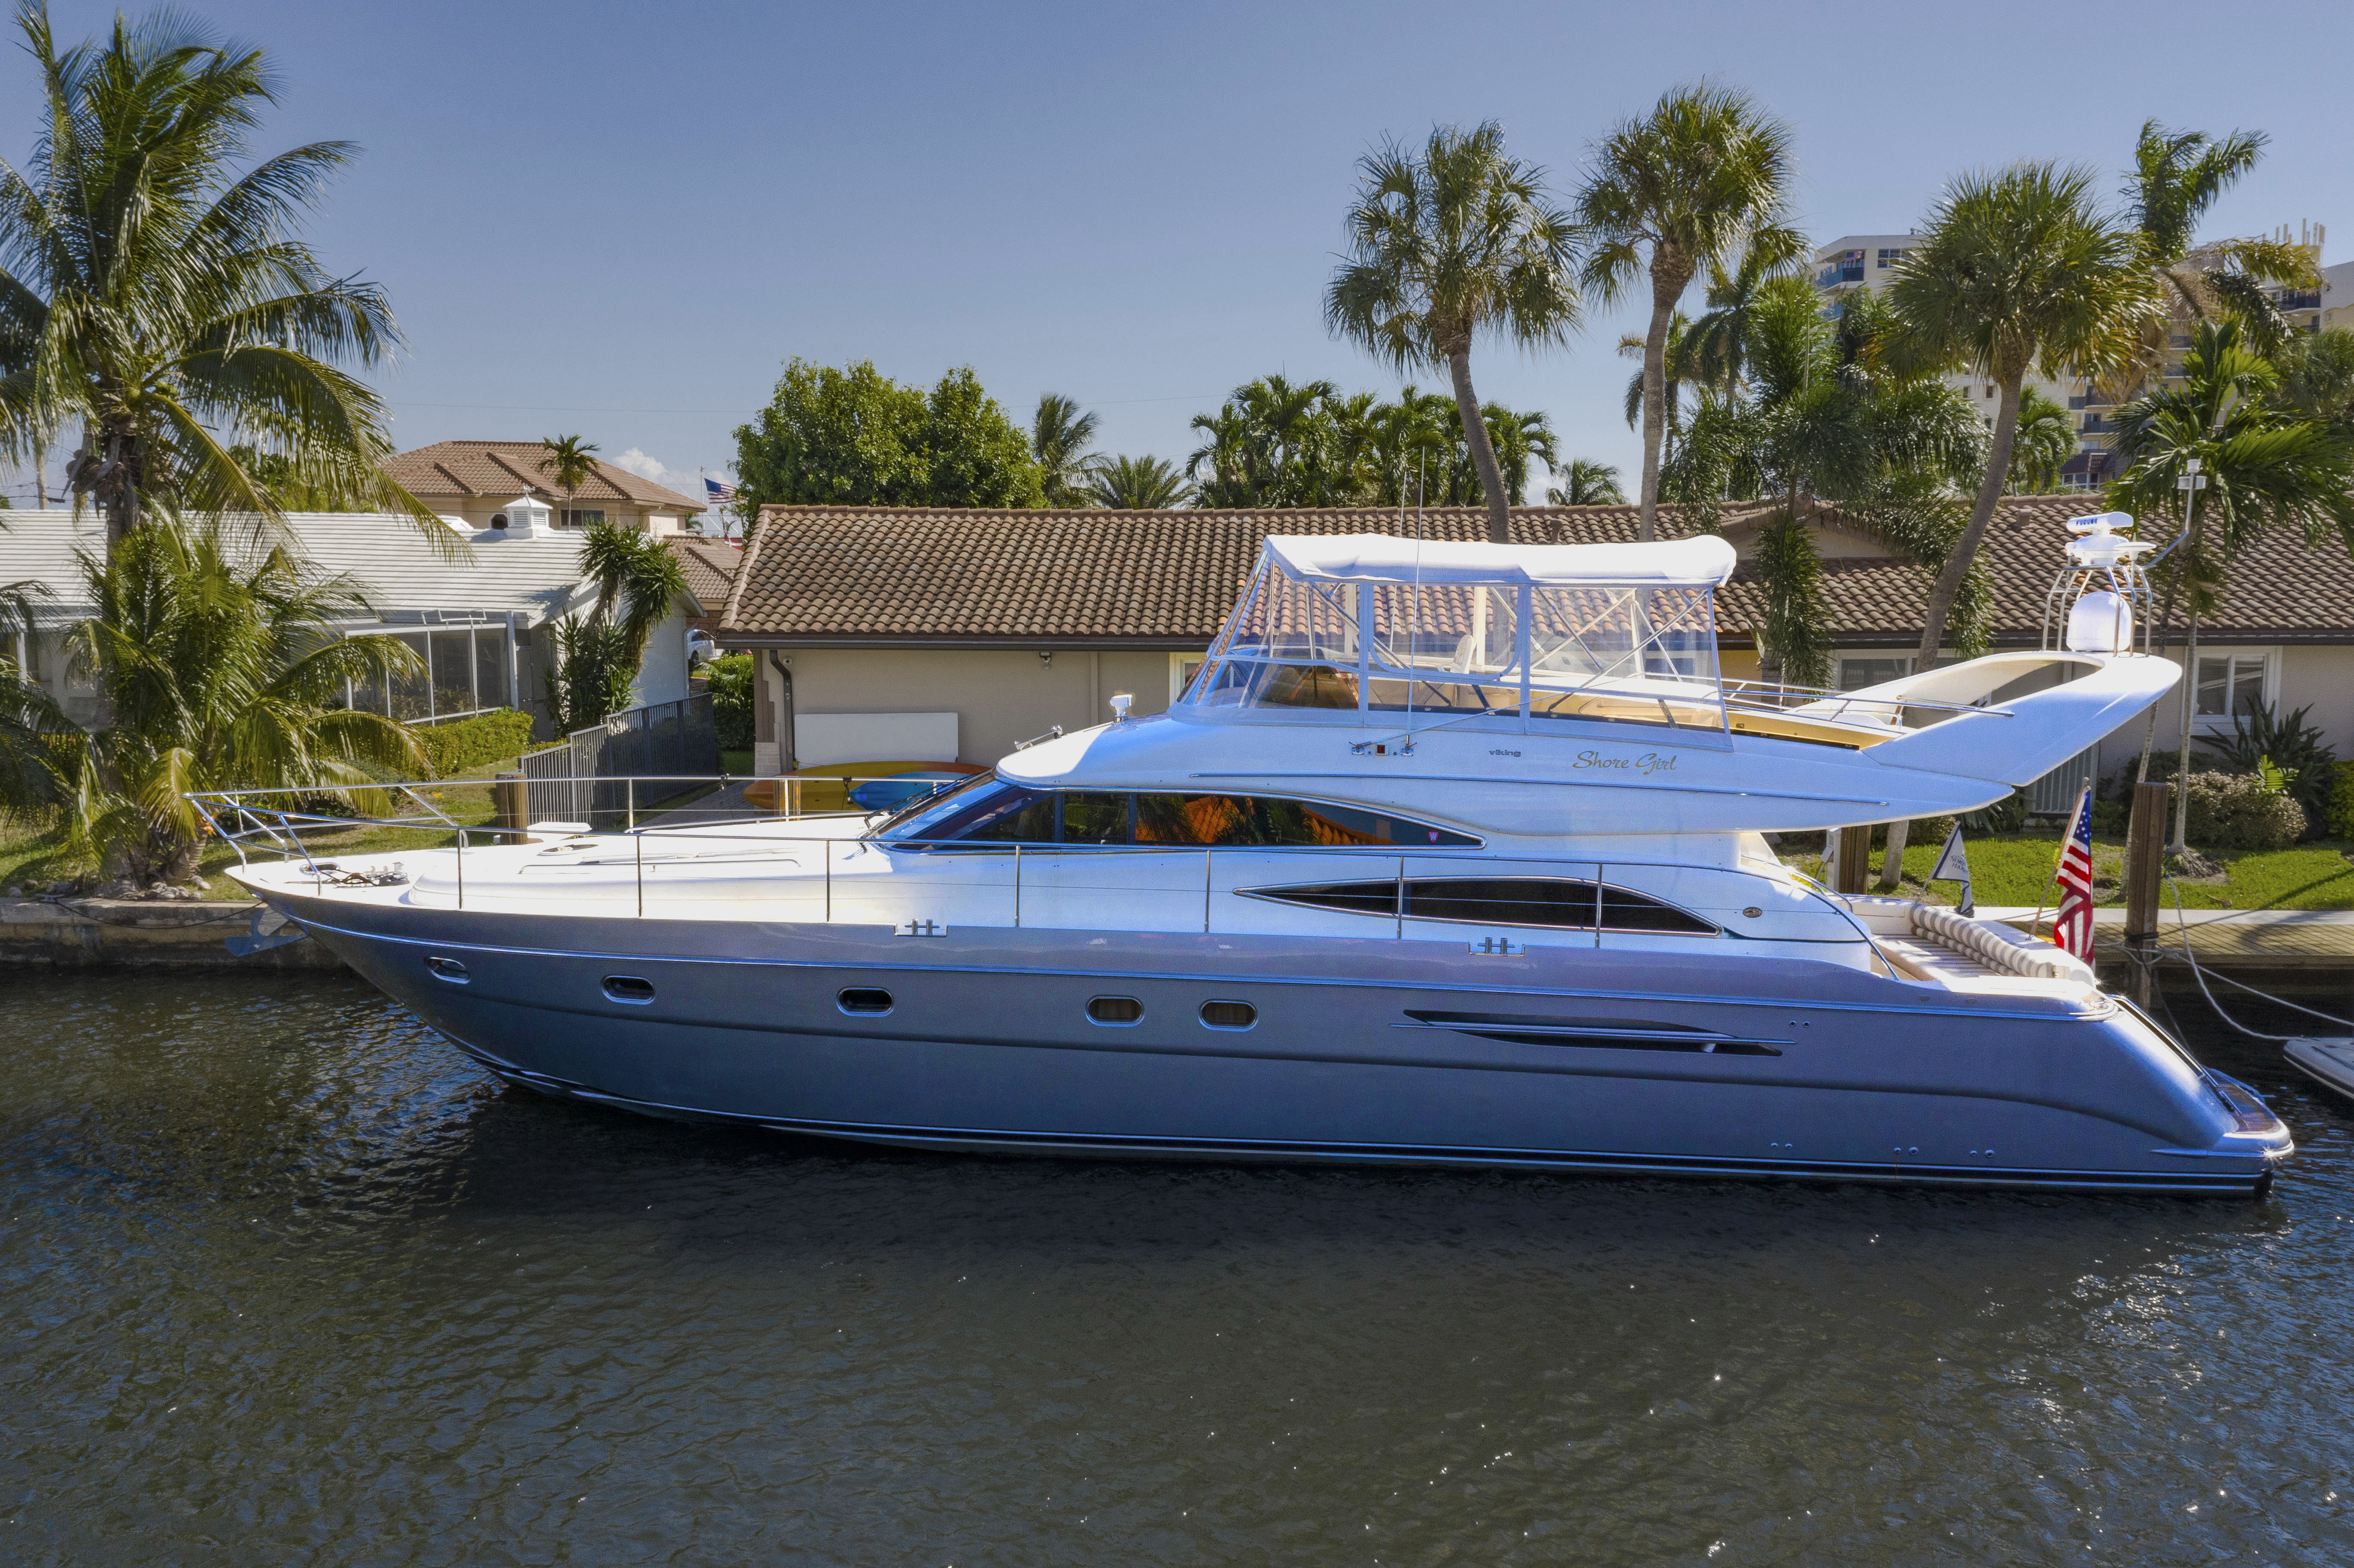 61' 2003 Viking Princess FBMY Shore Girl